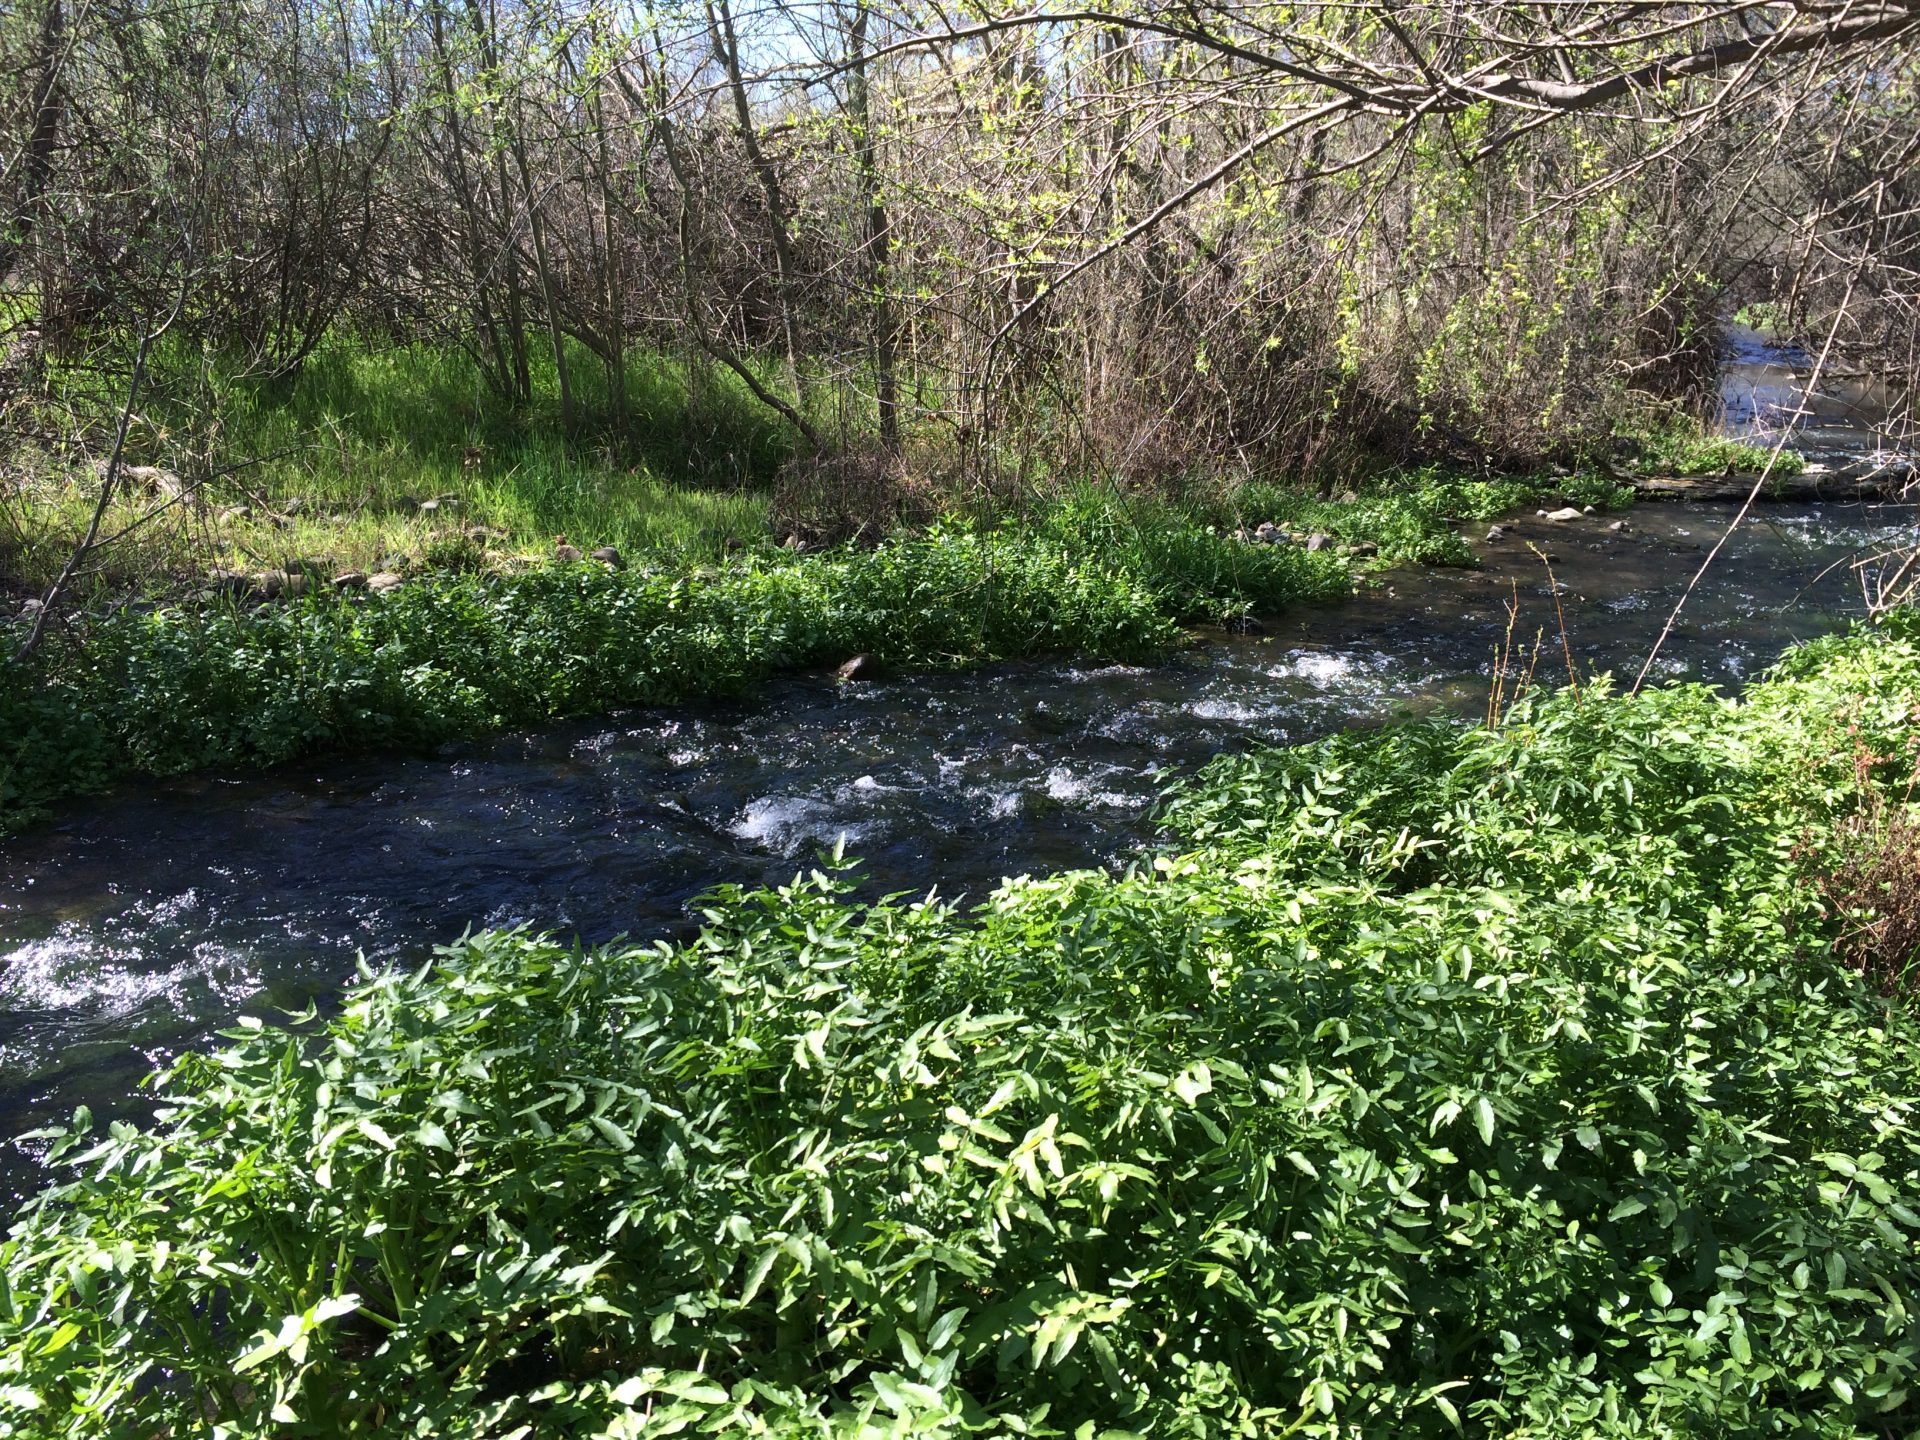 Speak up for riparian corridor protection and bird-safe design